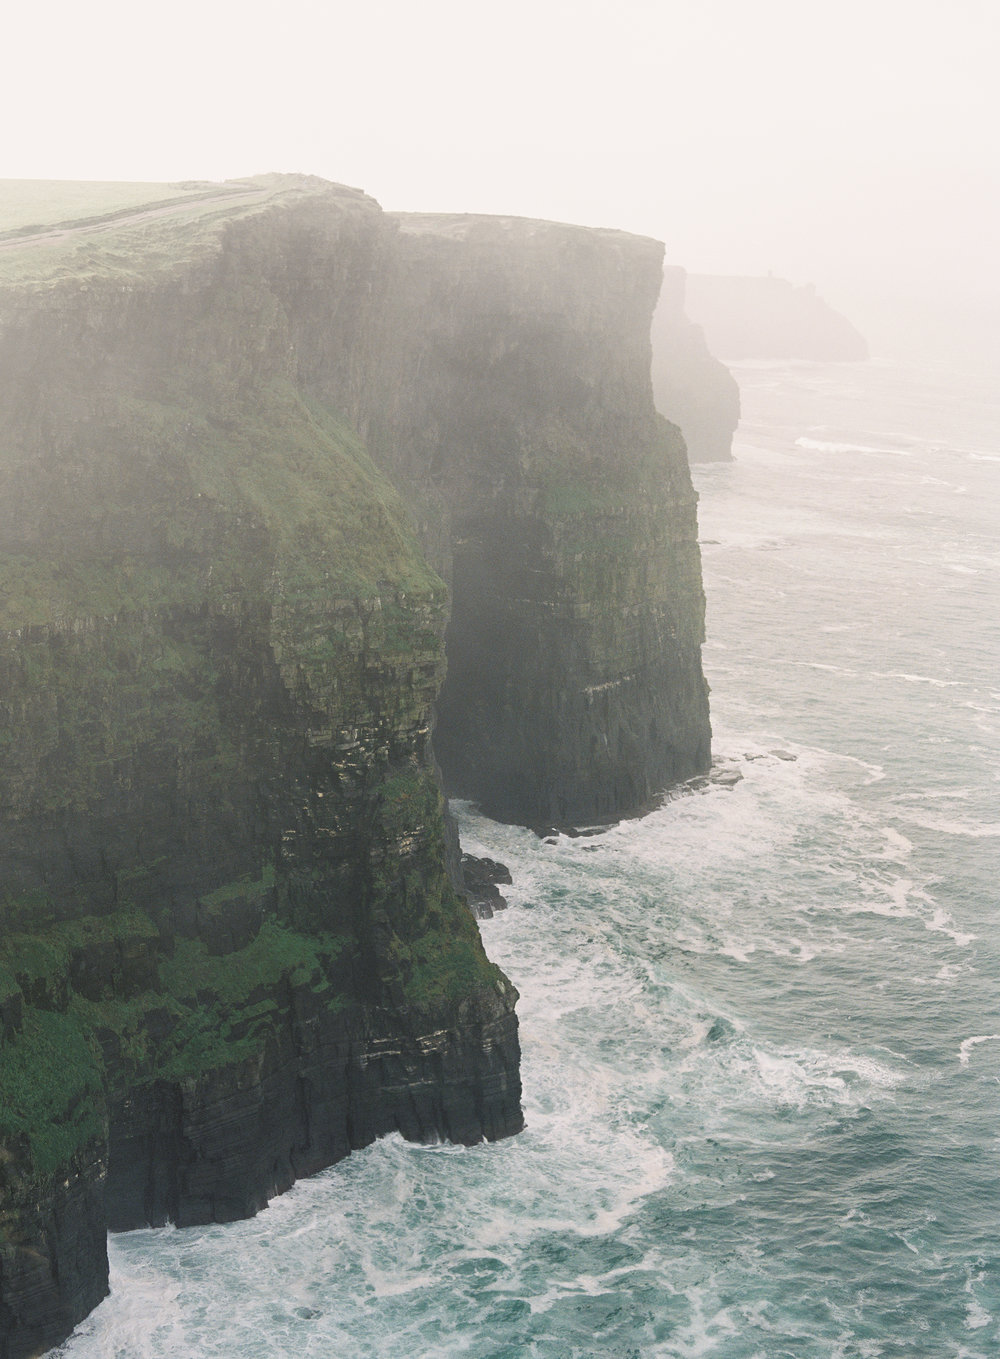 Cliffs of Moher - copyright: Carrie KinG Photographer